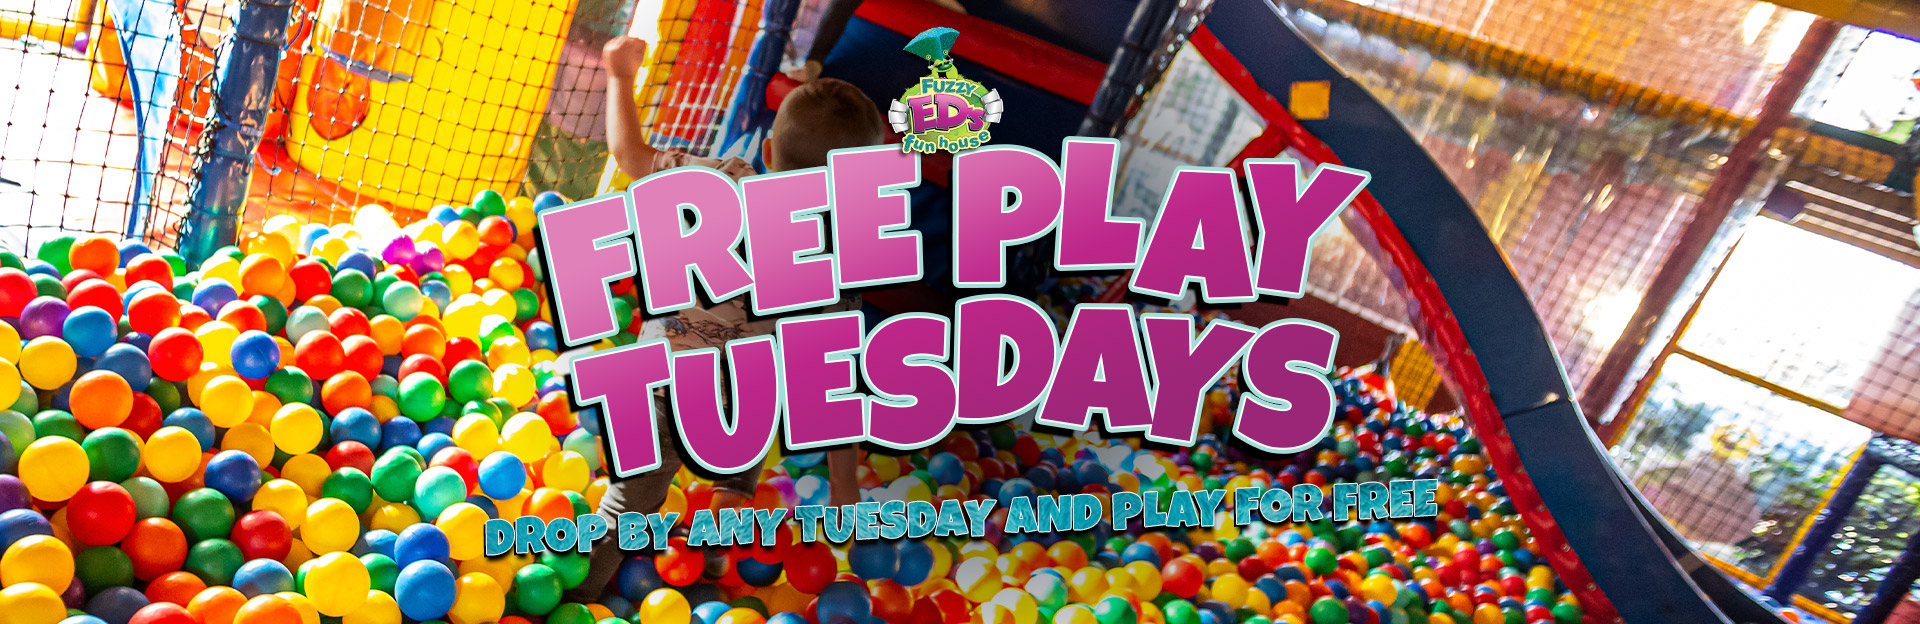 Enjoy free play on Tuesdays